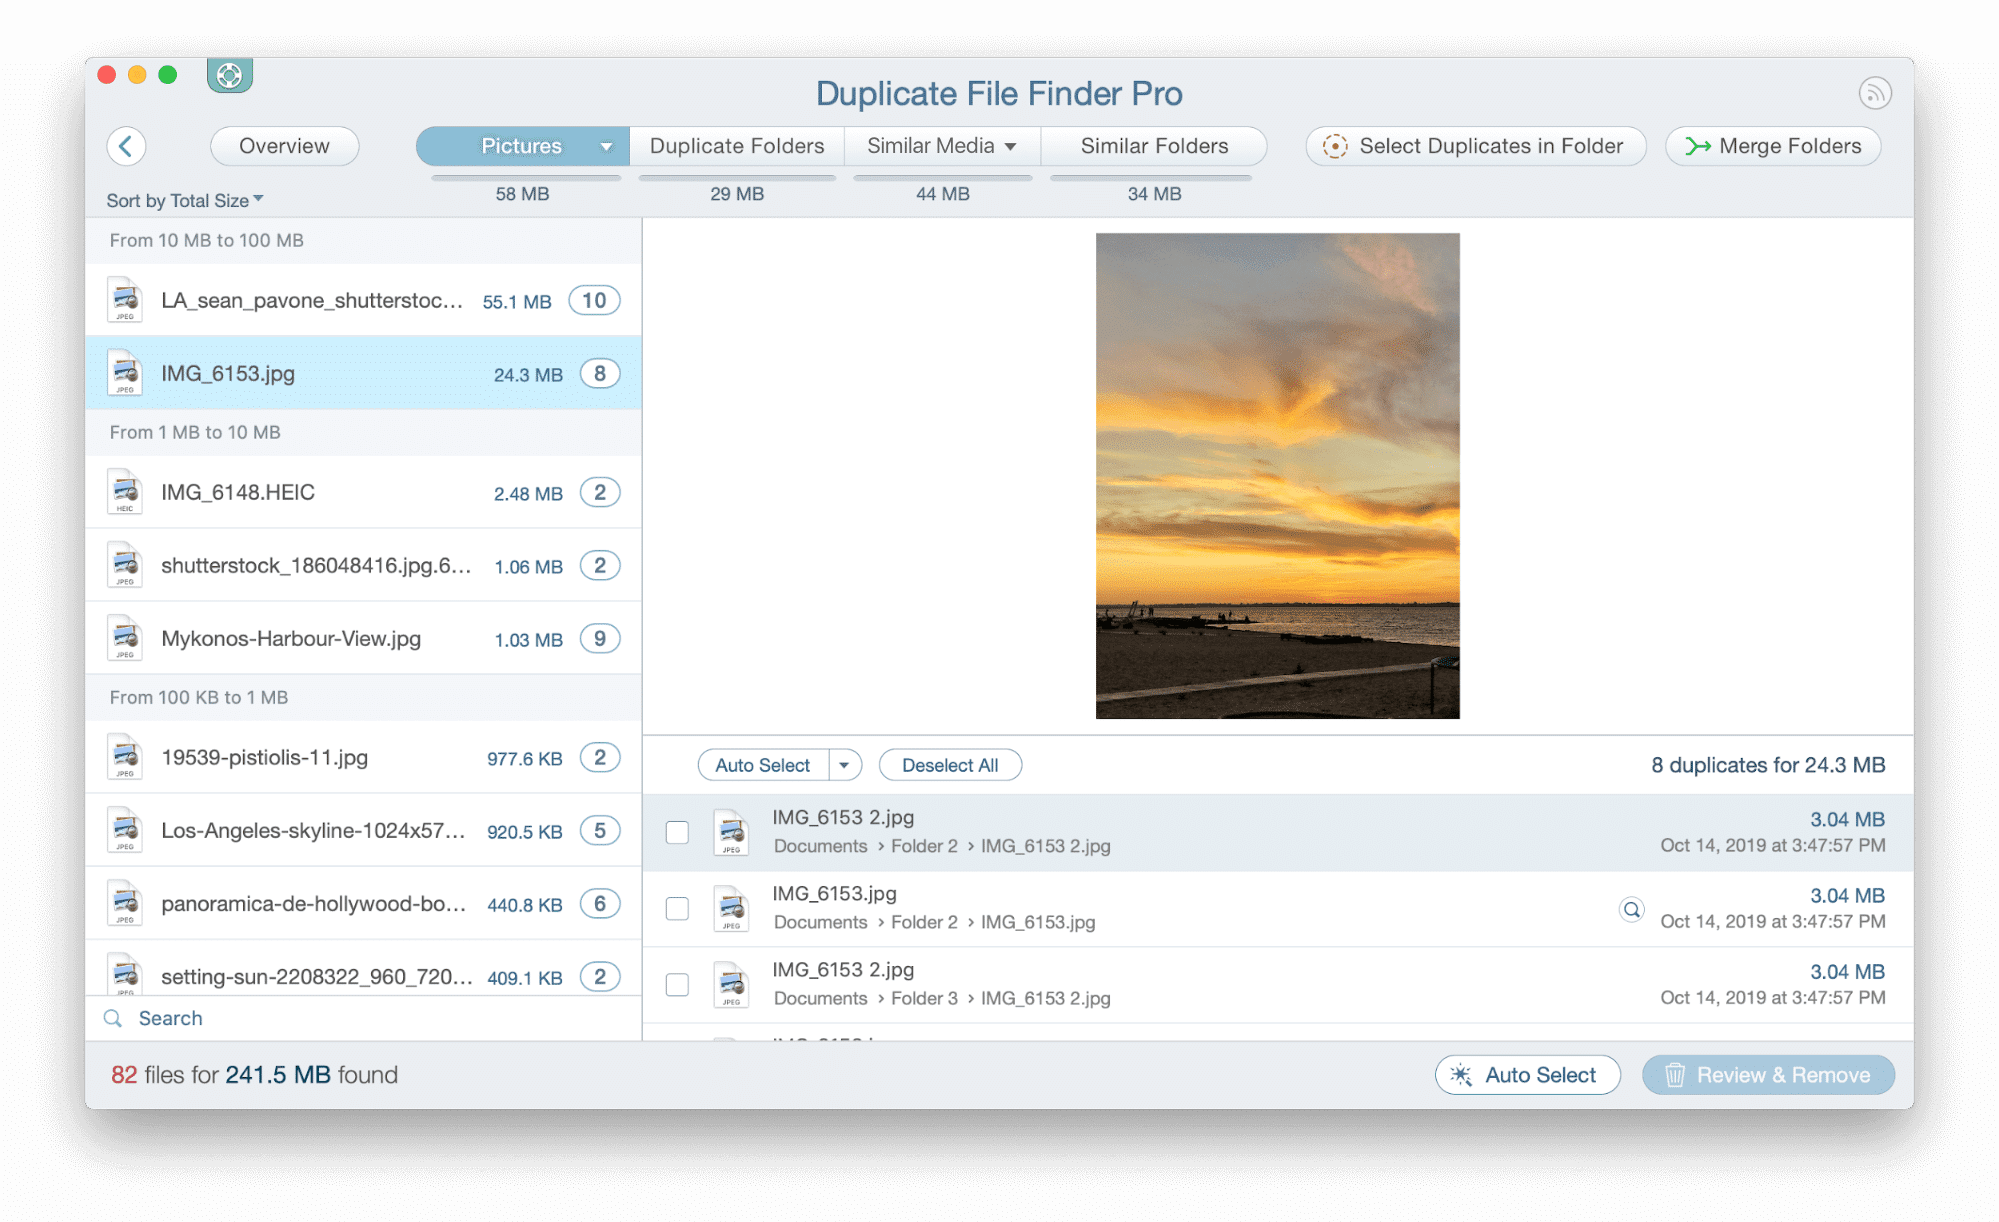 Duplicate files listed in the application